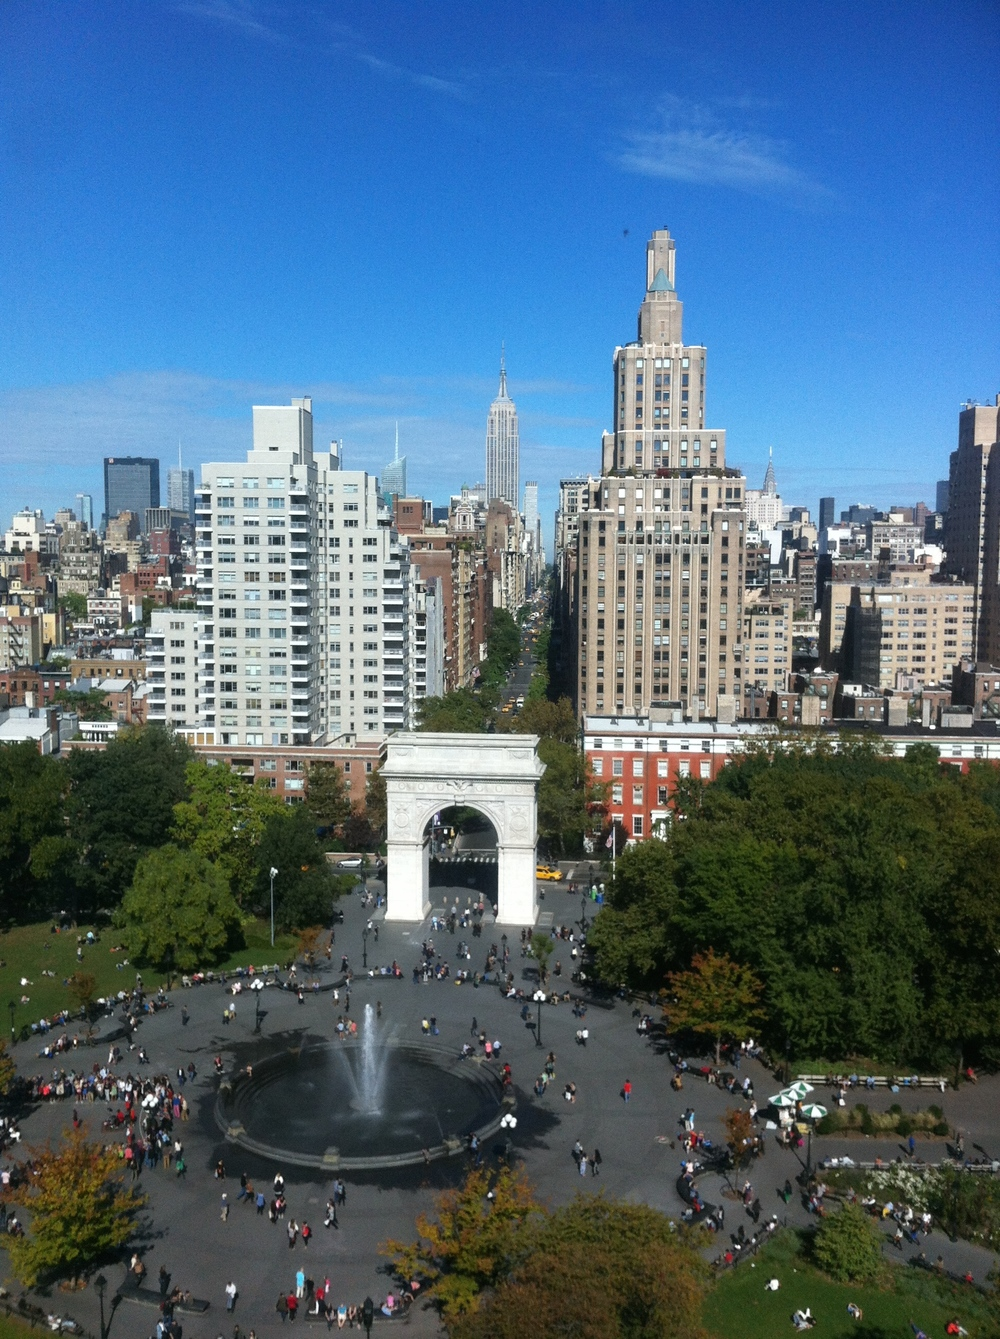 Washington Square Park [Chris Andersson]